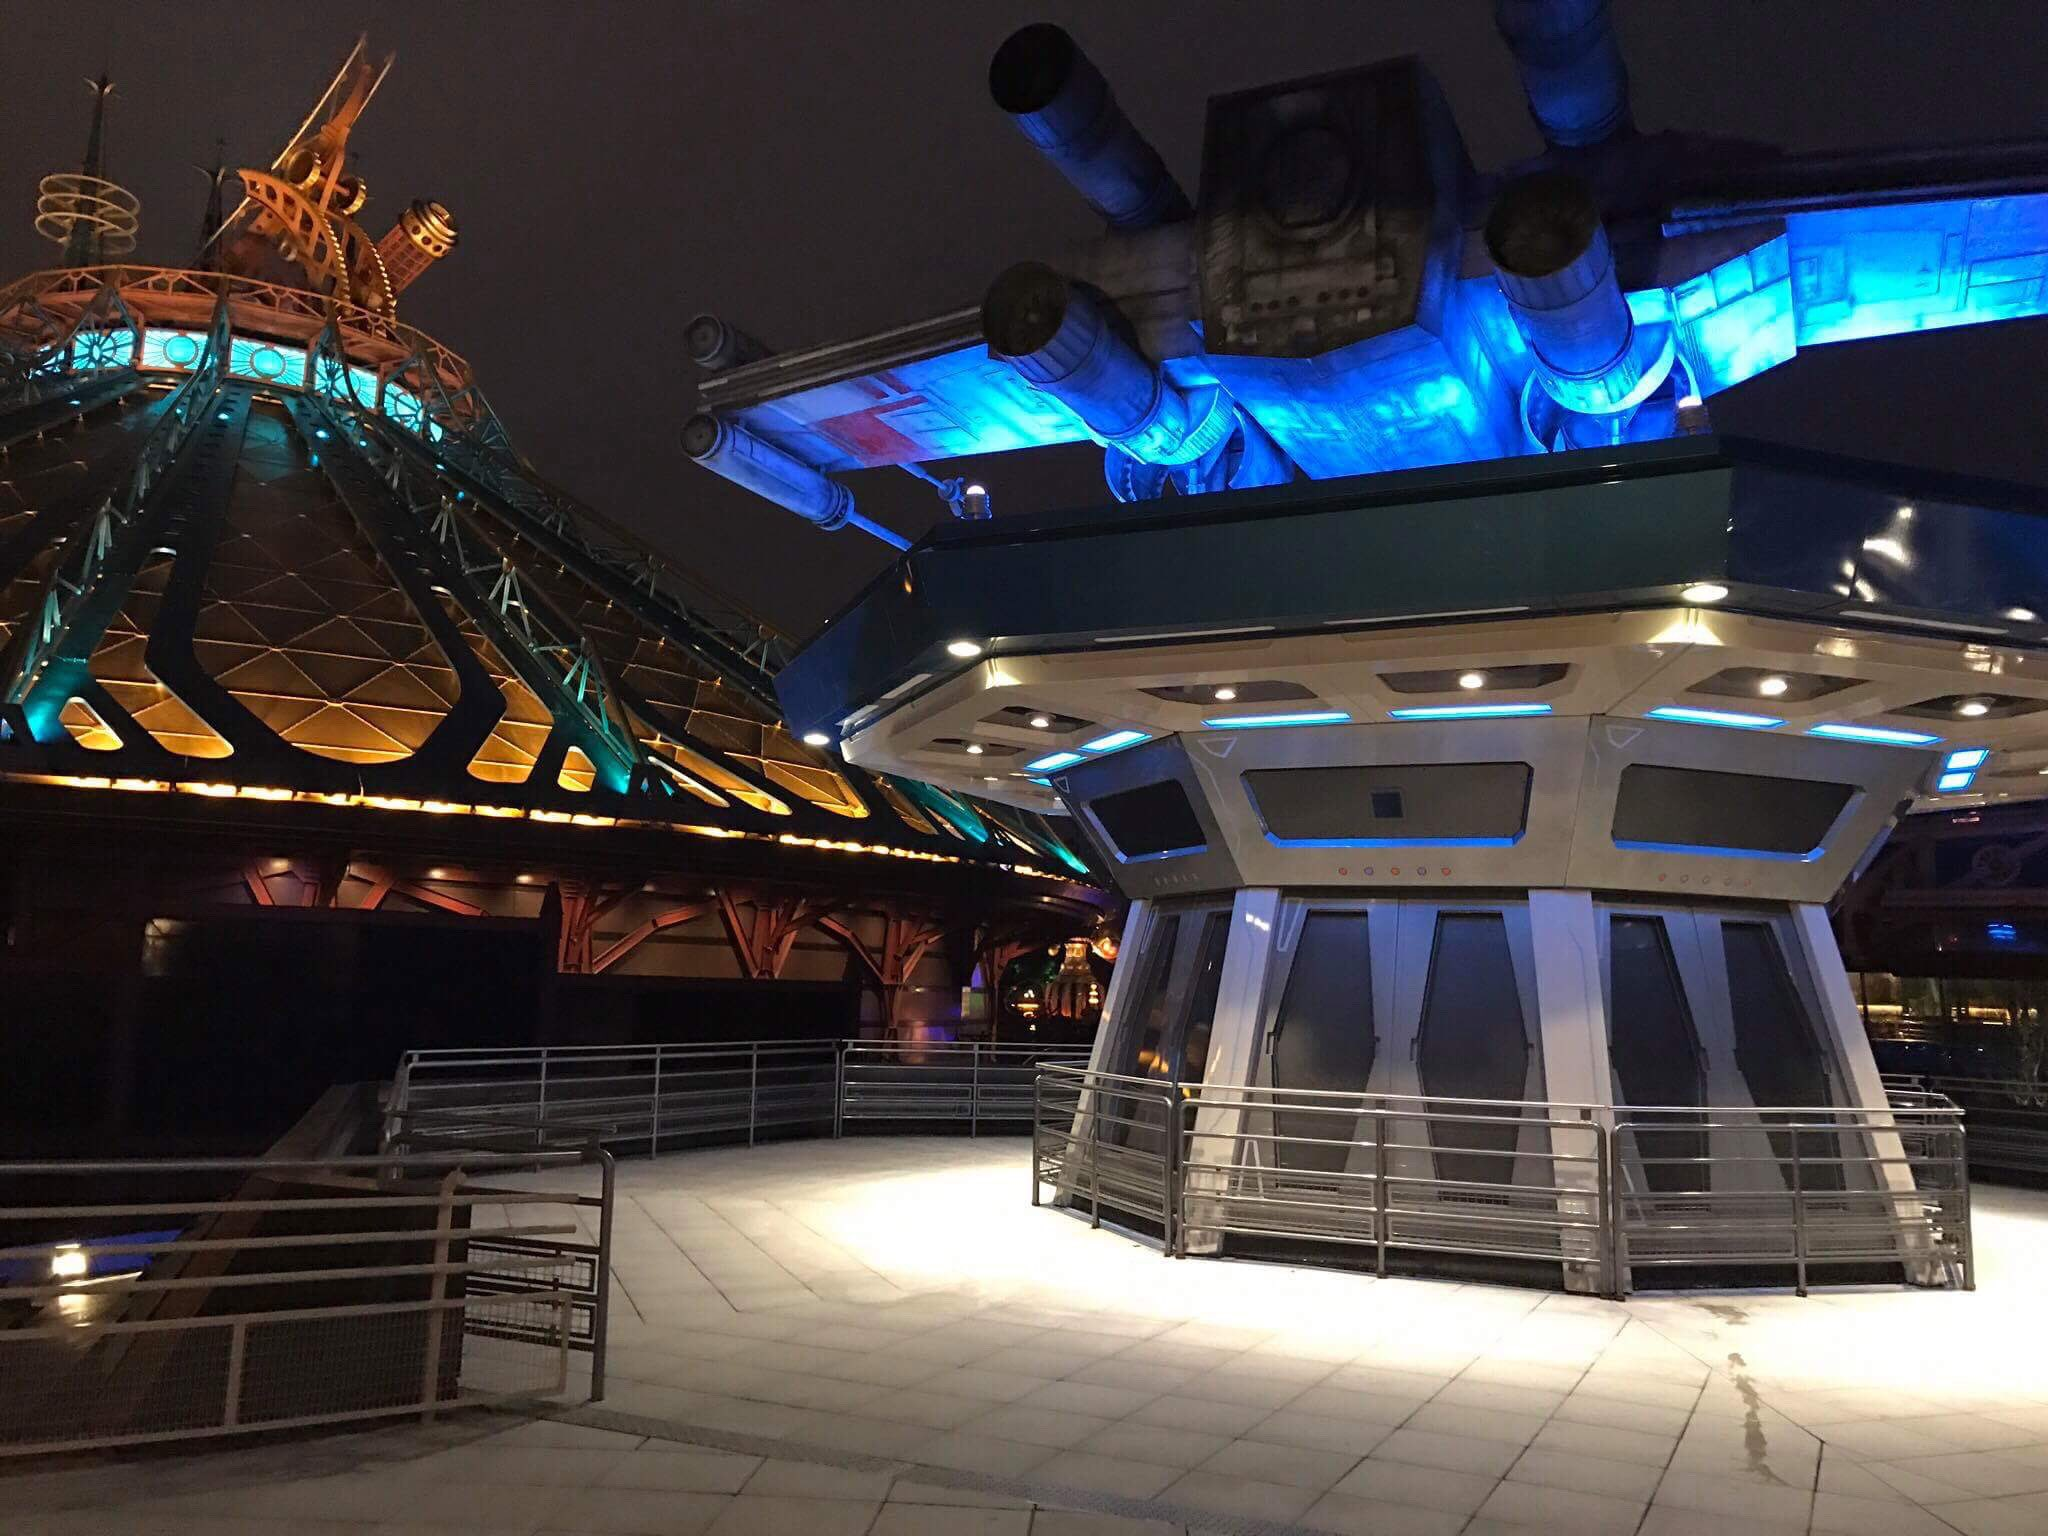 Star Tours area from Discoveryland Station and Starport Terrace - by night https://t.co/aG8DuUvTUe